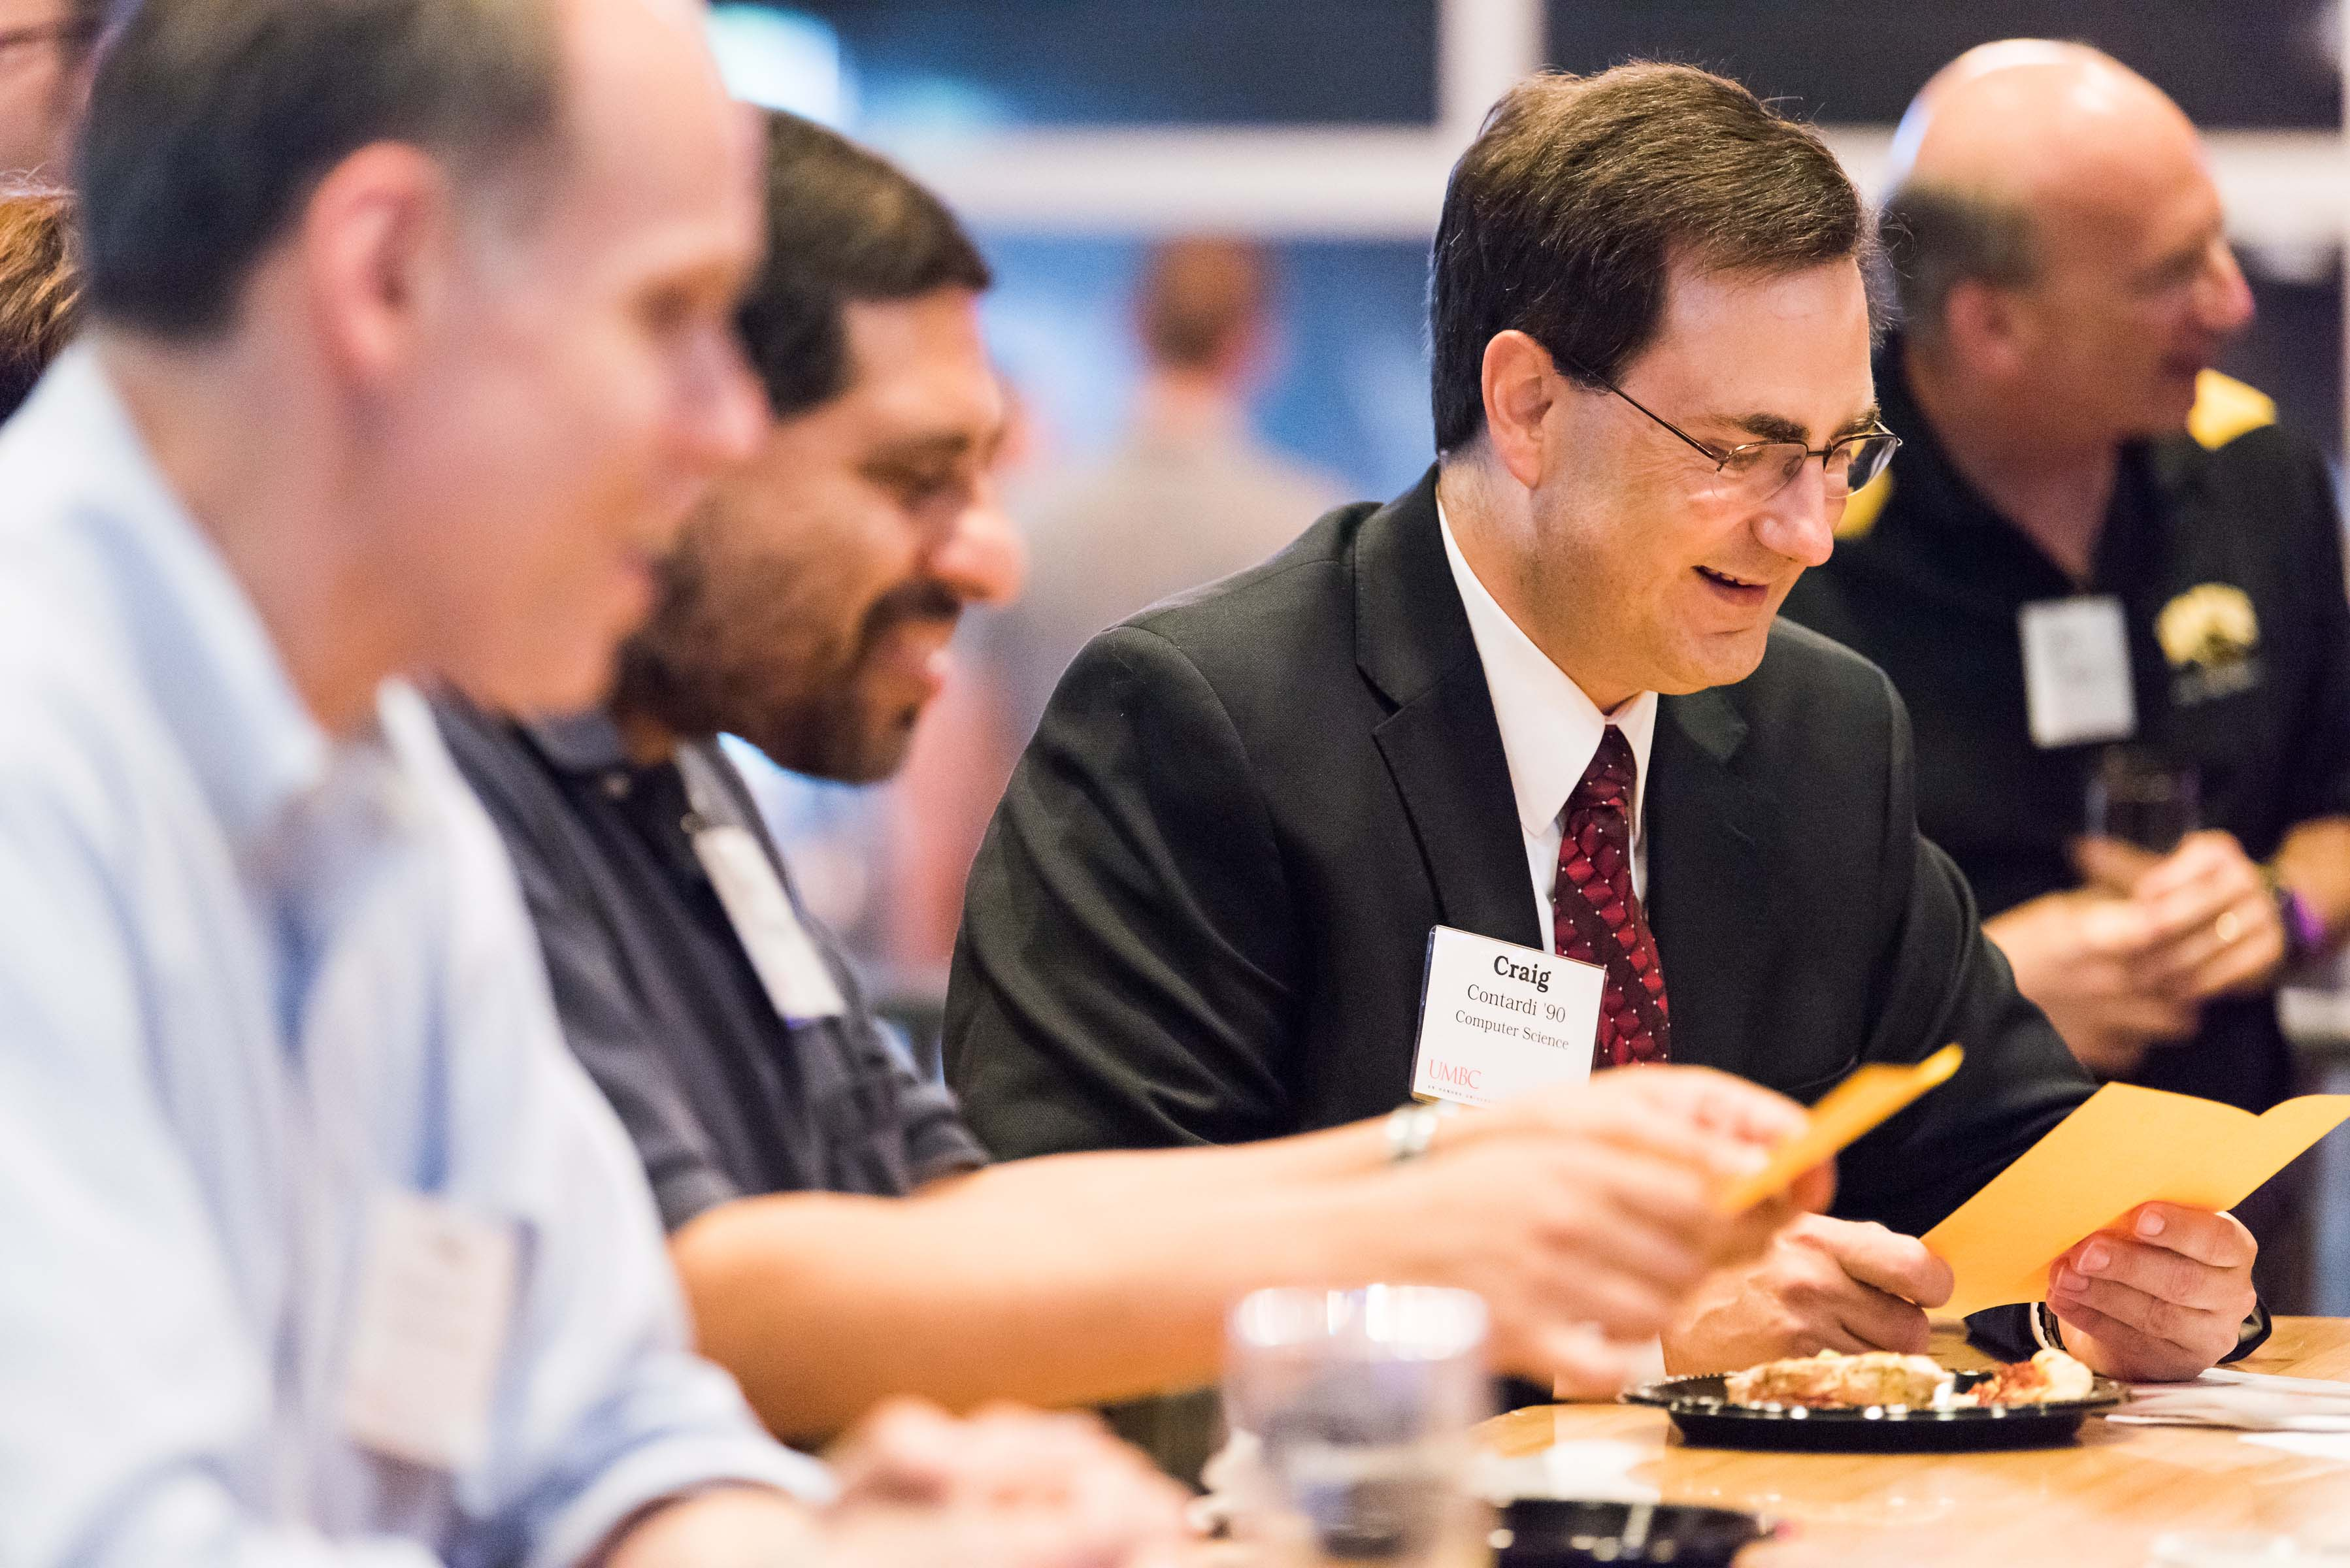 Craig and others smile down at papers at ITE happy hour